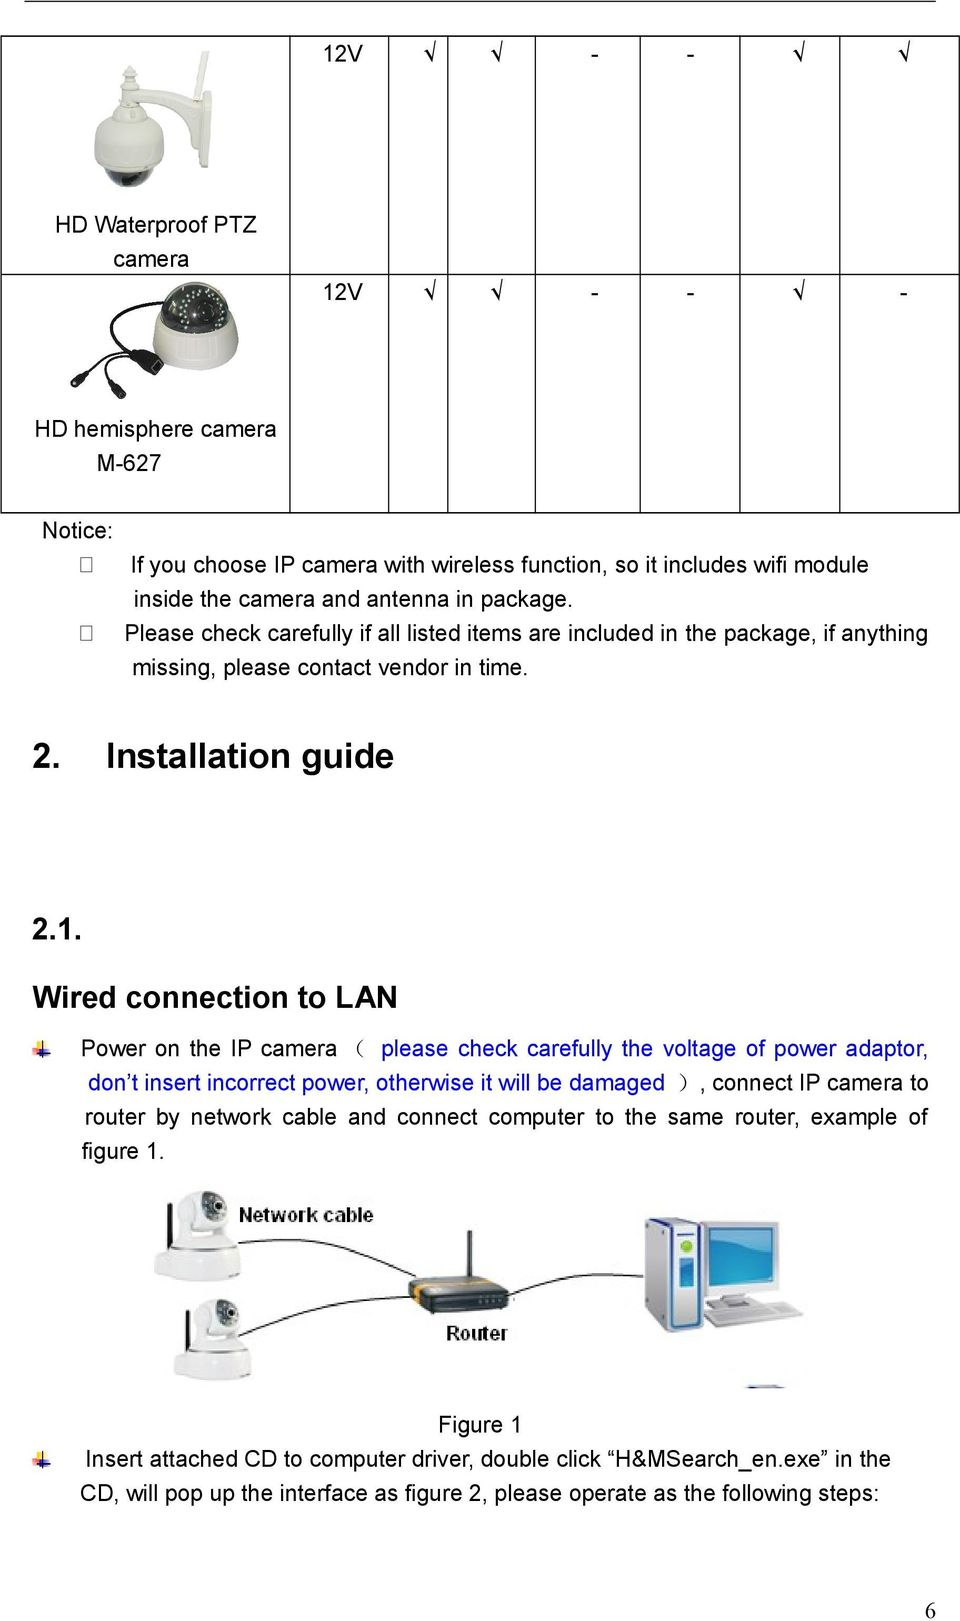 Wired connection to LAN Power on the IP camera please check carefully the voltage of power adaptor, don t insert incorrect power, otherwise it will be damaged, connect IP camera to router by